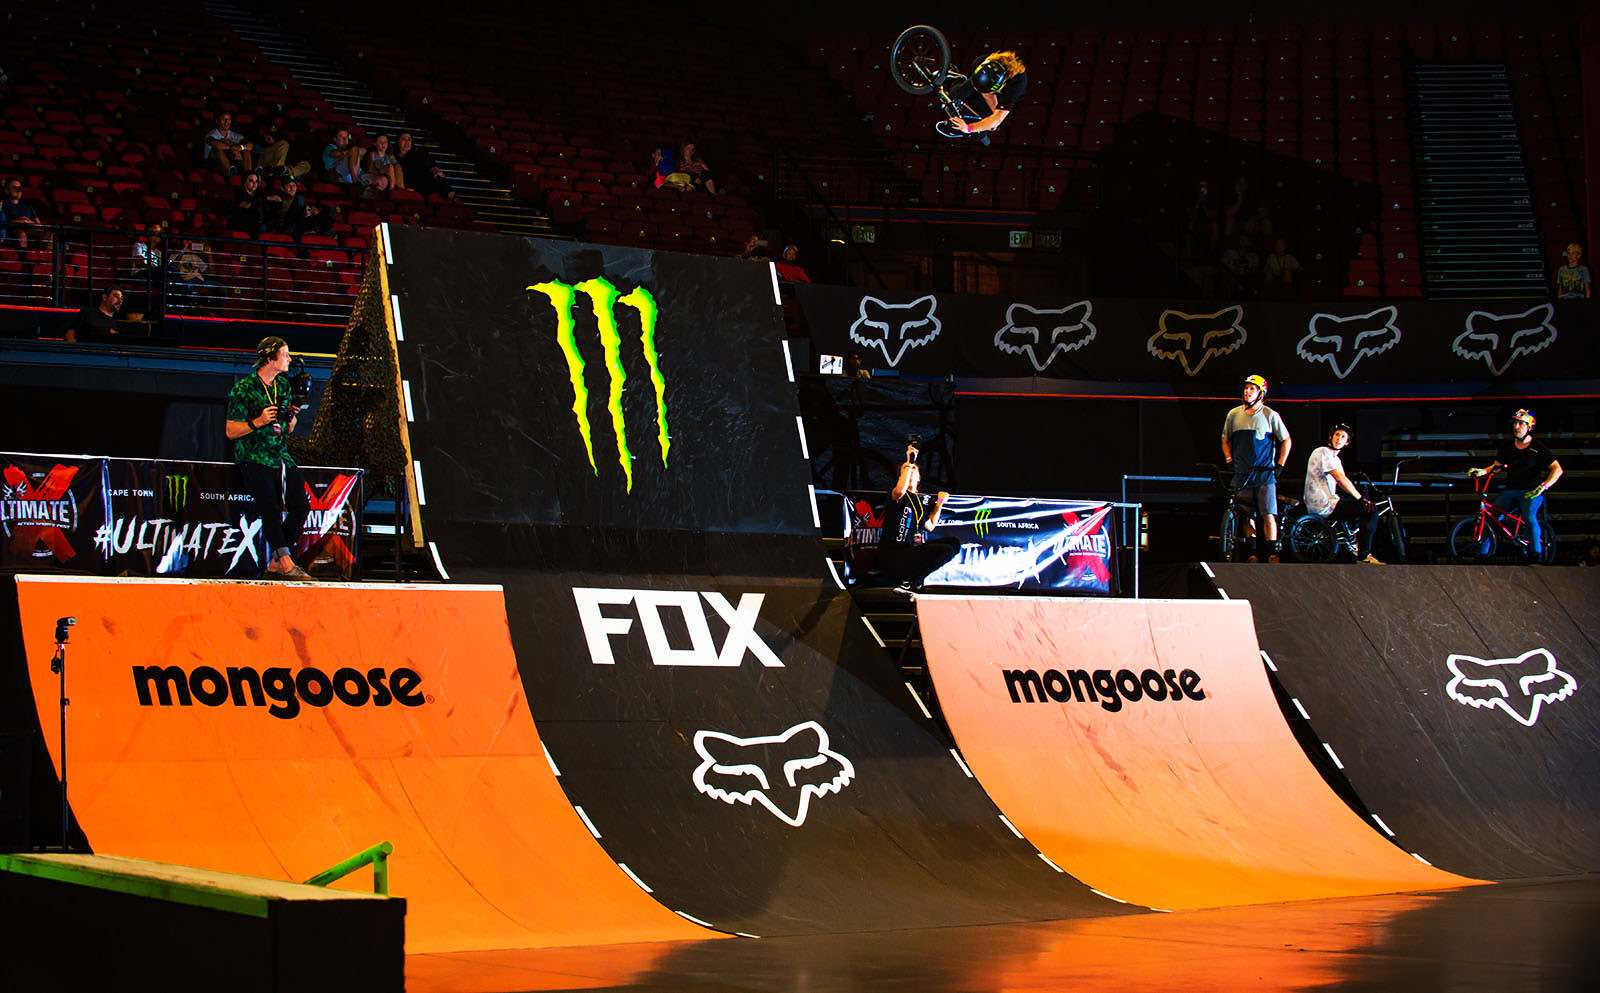 Greg Illingworth showcasing his BMX skill at Ultimate X 2017